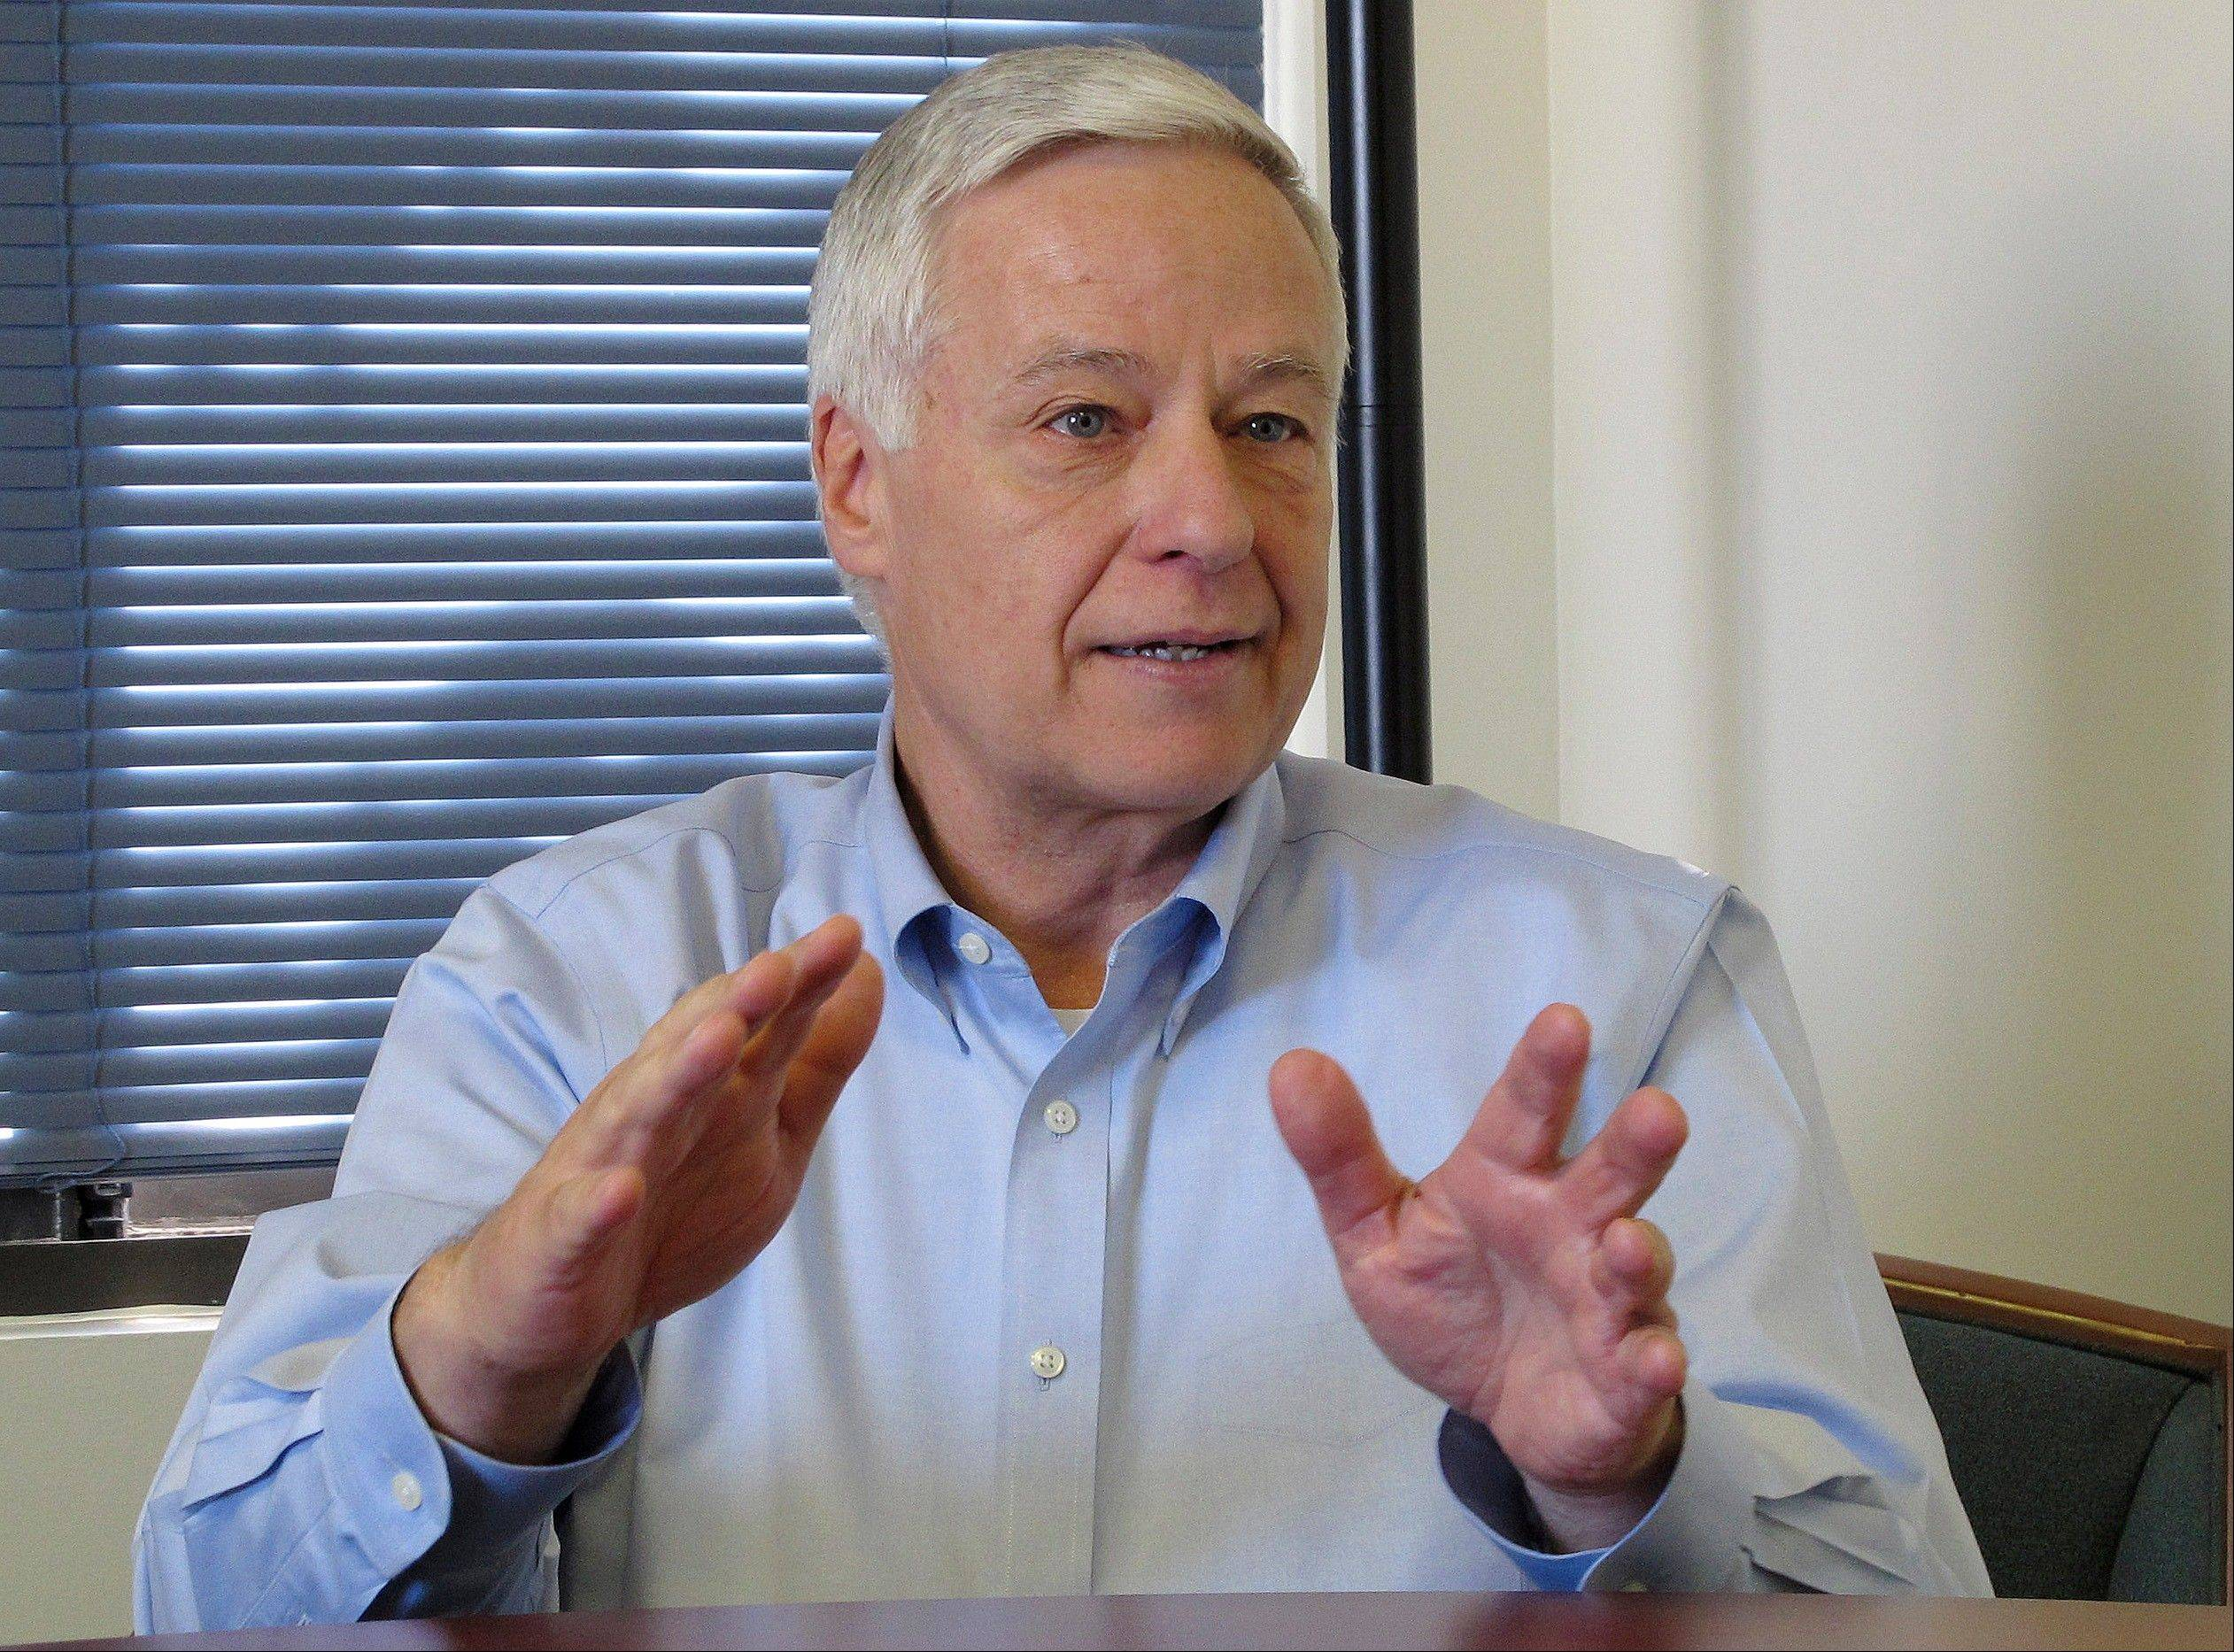 U.S. Rep. Mike Michaud, a Democrat running for governor of Maine, said he came out as gay to dispel �whisper campaigns� about his sexuality as the three-way race for governor began to take shape.